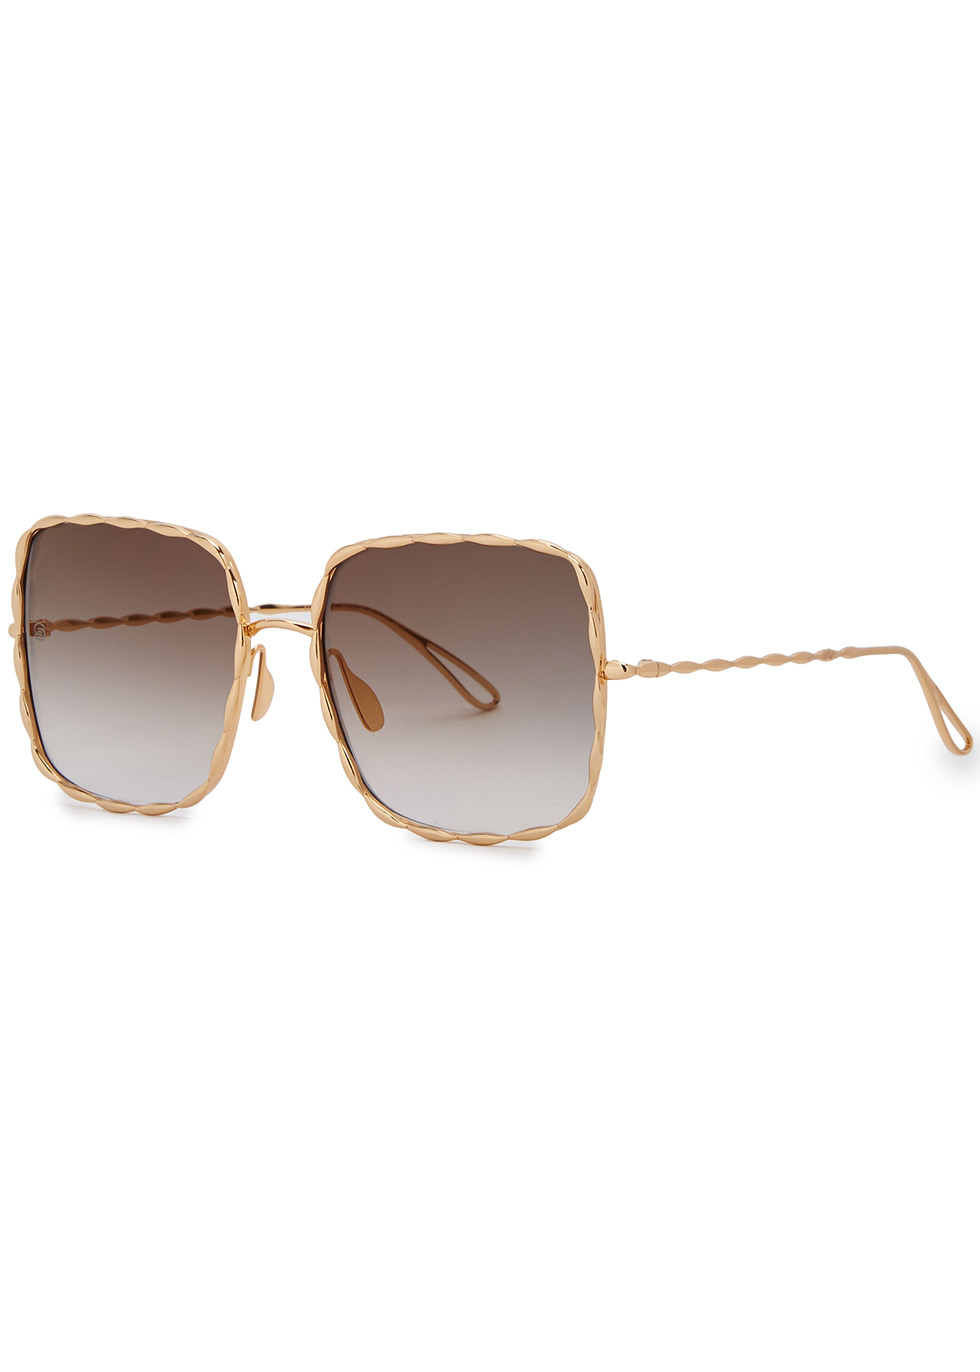 Gold-plated square-frame sunglasses - Elie Saab